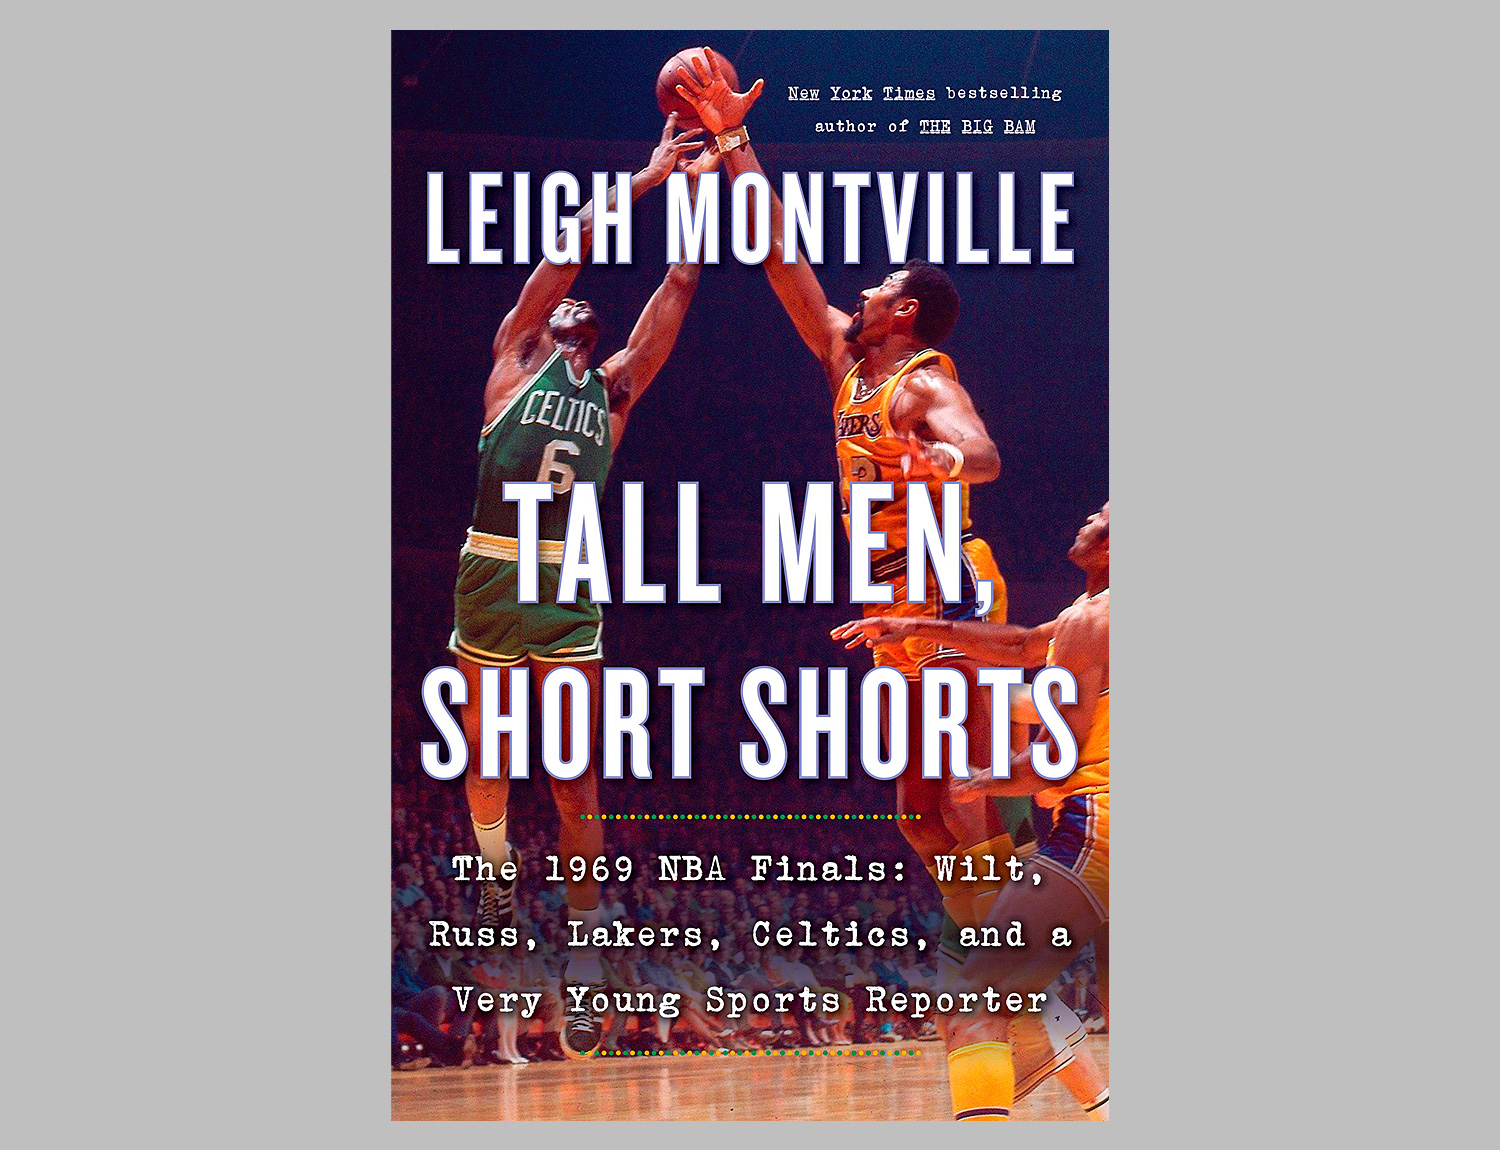 Tall Men, Short Shorts: The 1969 NBA Finals: Wilt, Russ, Lakers, Celtics, and a Very Young Sports Reporter at werd.com